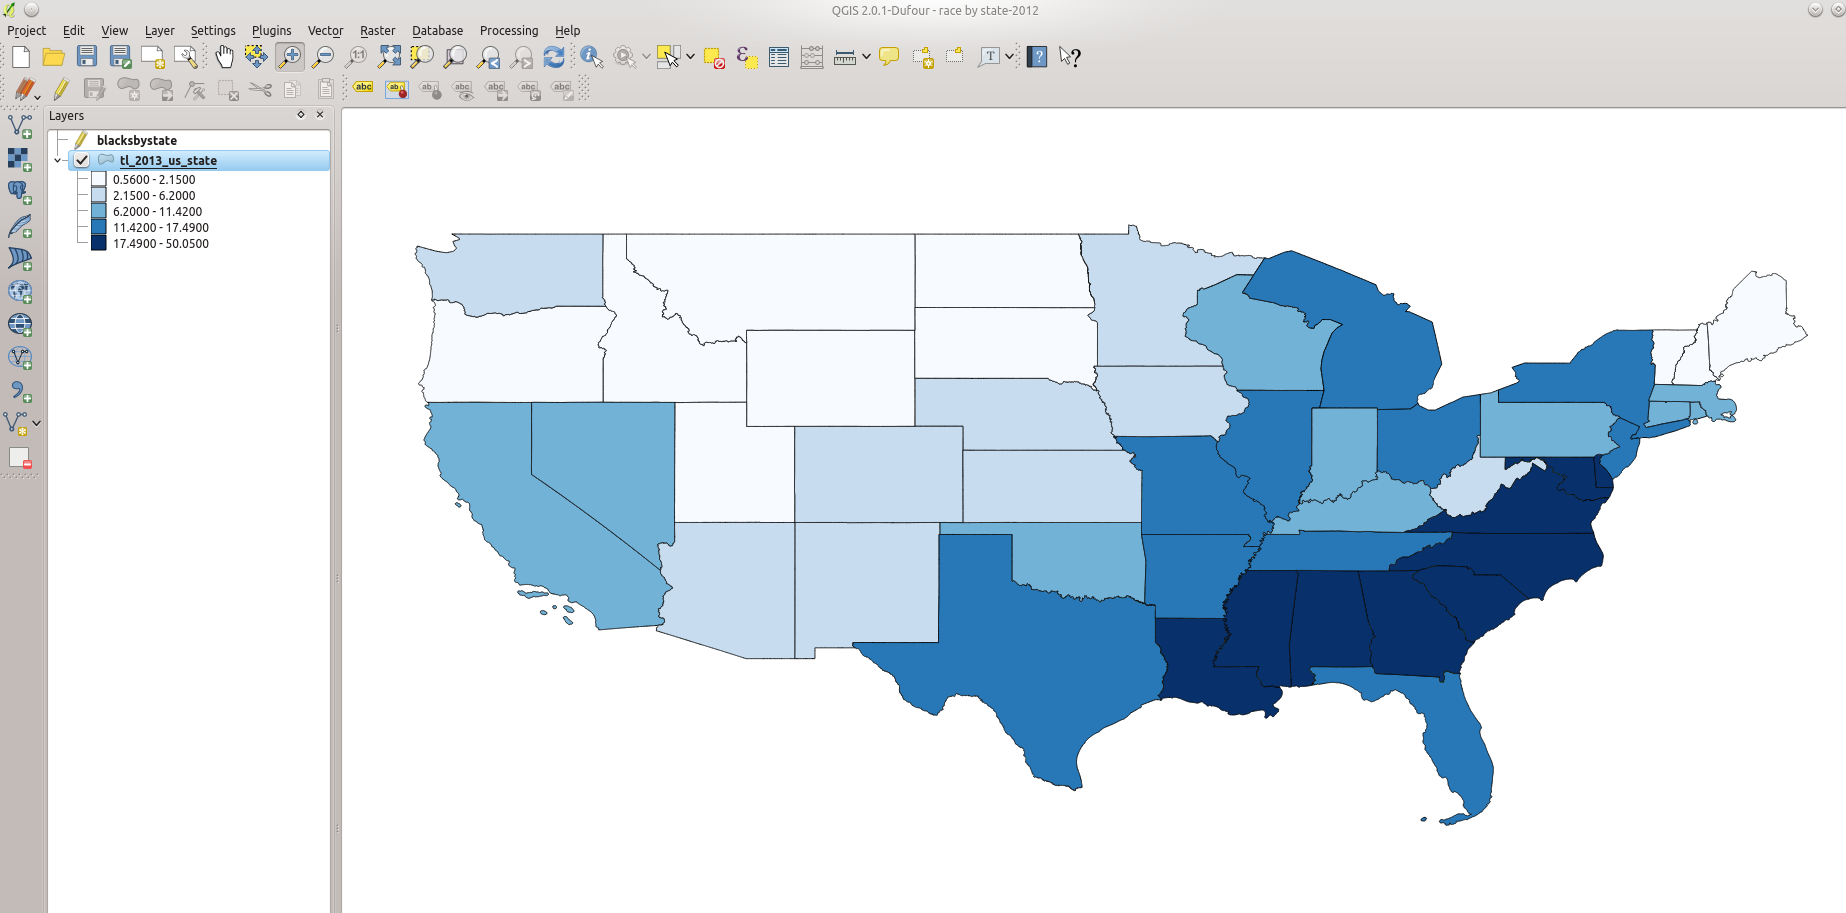 Once You Re Ready Click Ok And Watch Your Map Change To Reflect Color Coded Values Based On Your Variable